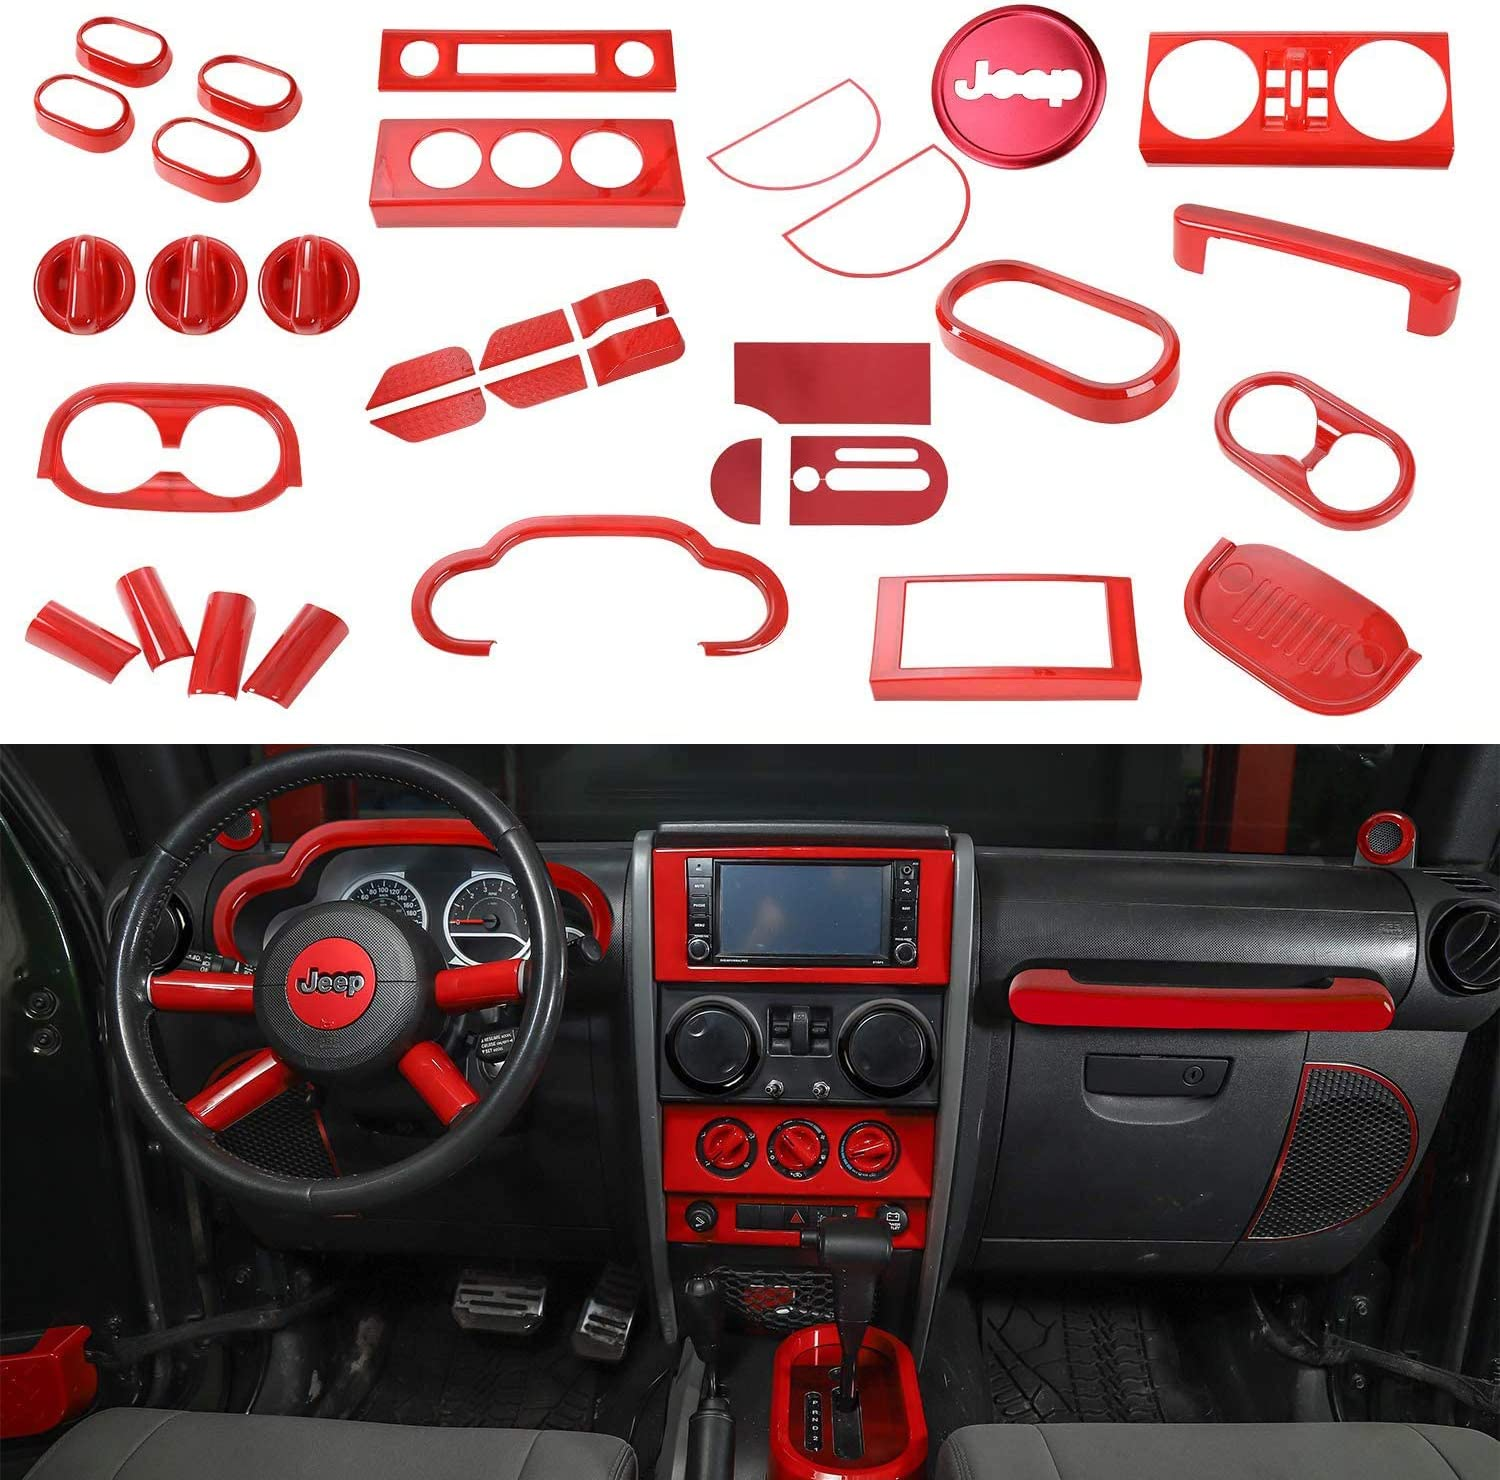 RT-TCZ Red Dashboard Control Console Trim Panel Cover Decor for Jeep Wrangler Accessories For 2007-2010 Jeep Wrangler JK